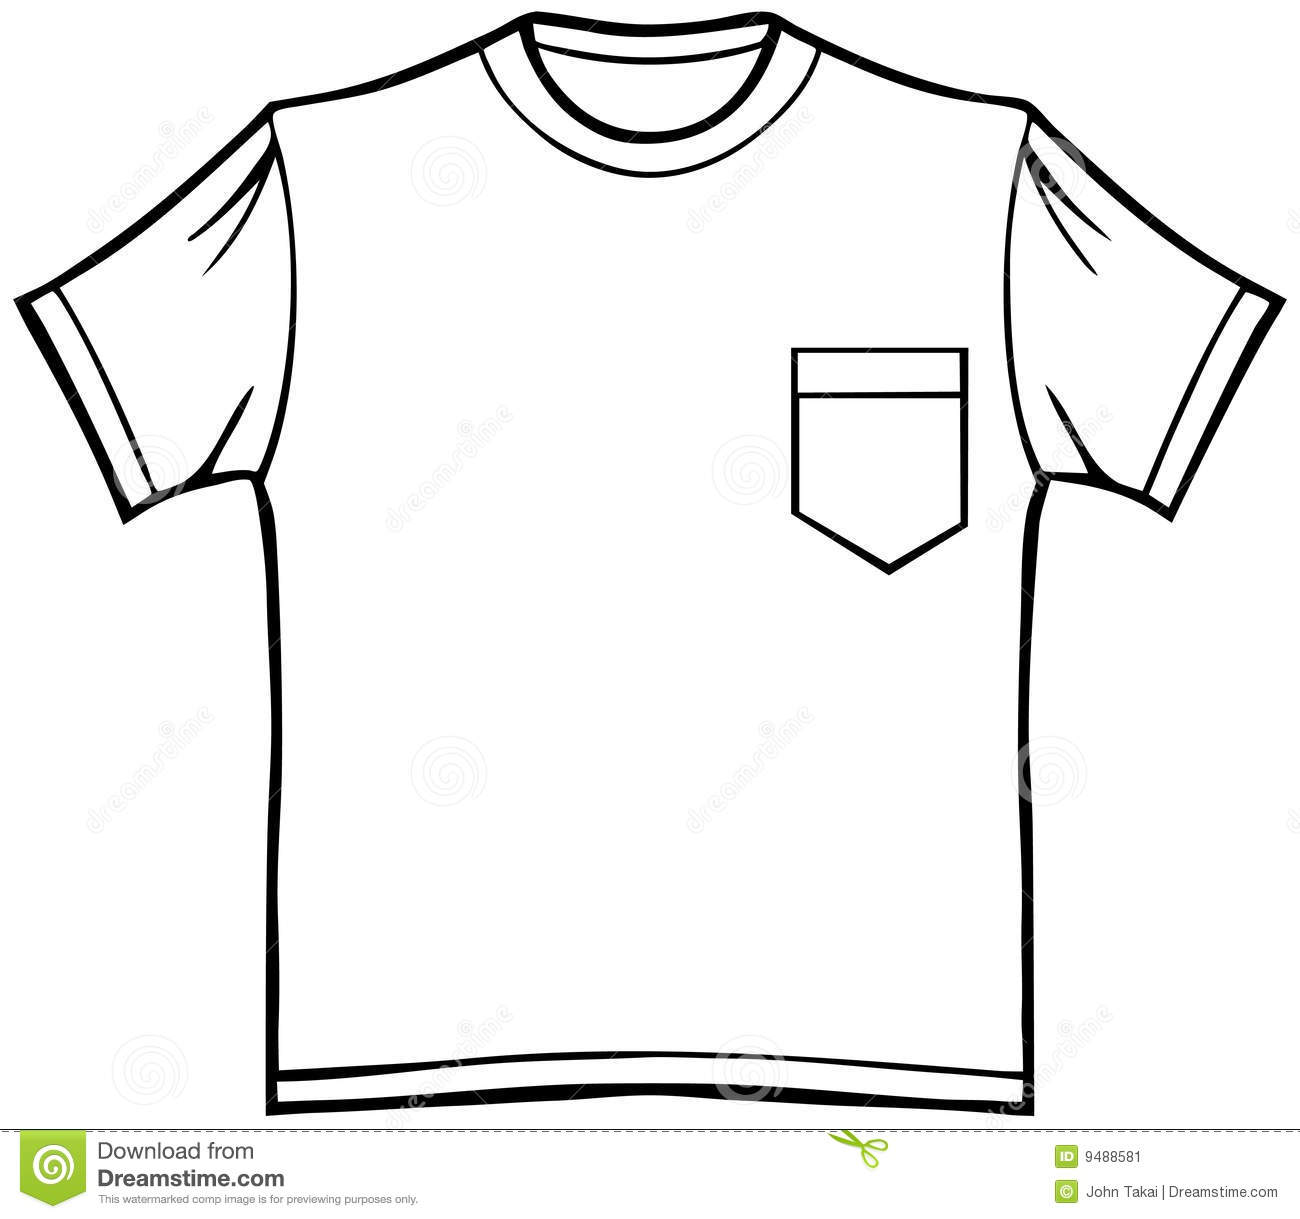 Shirt Clipart Black And White